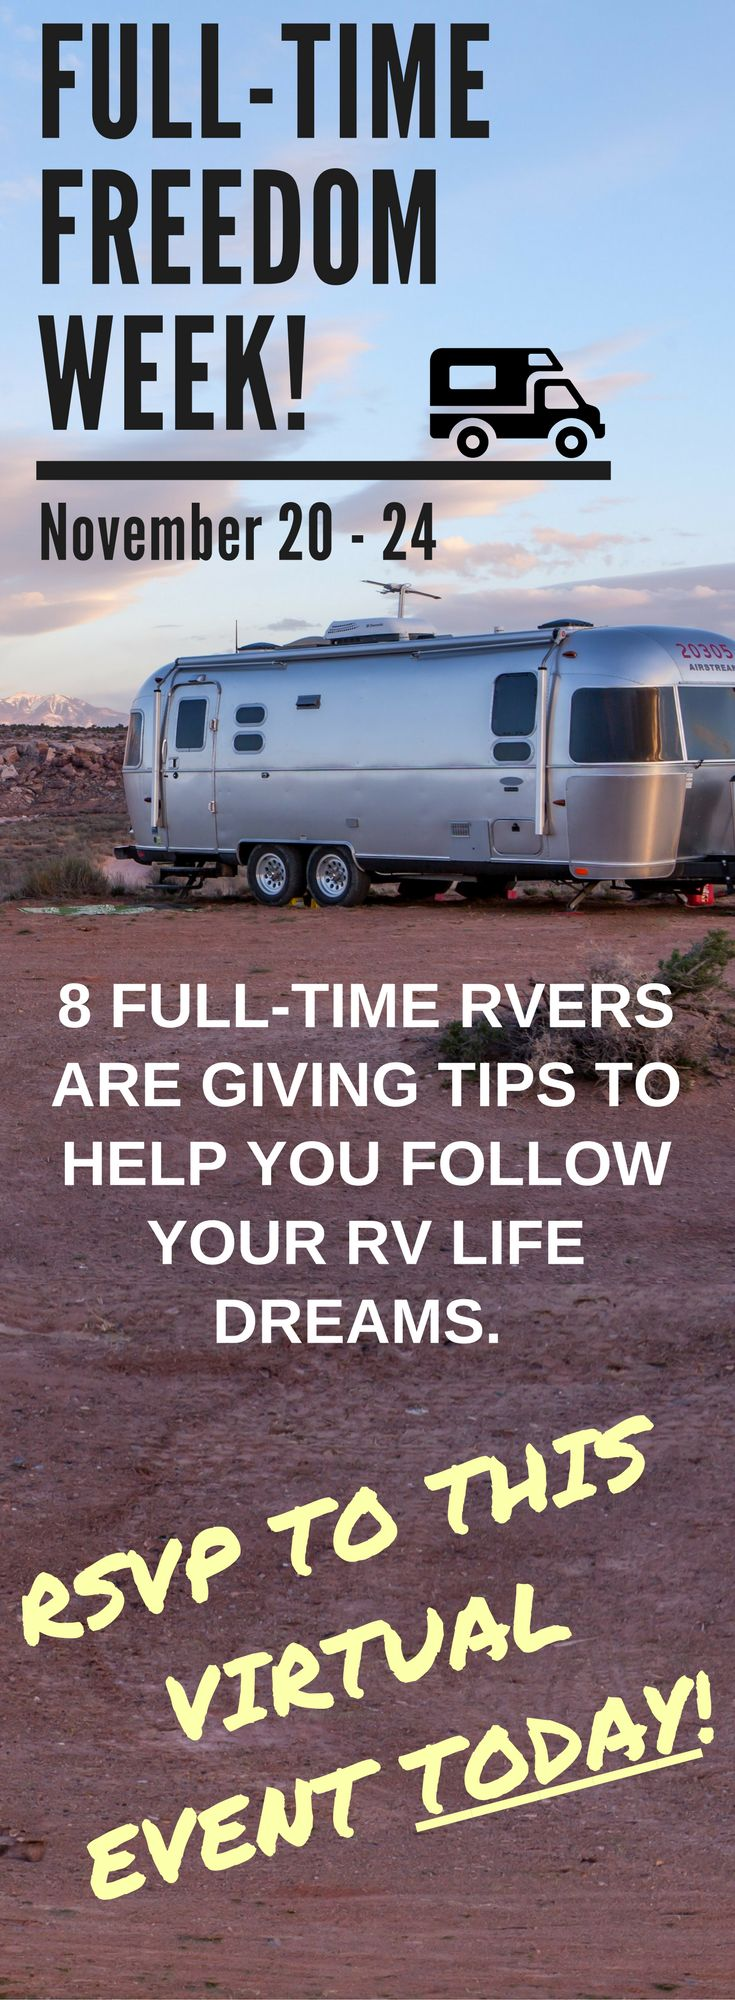 Best 25+ Living in an rv ideas on Pinterest | Rv, Life trailer and ...